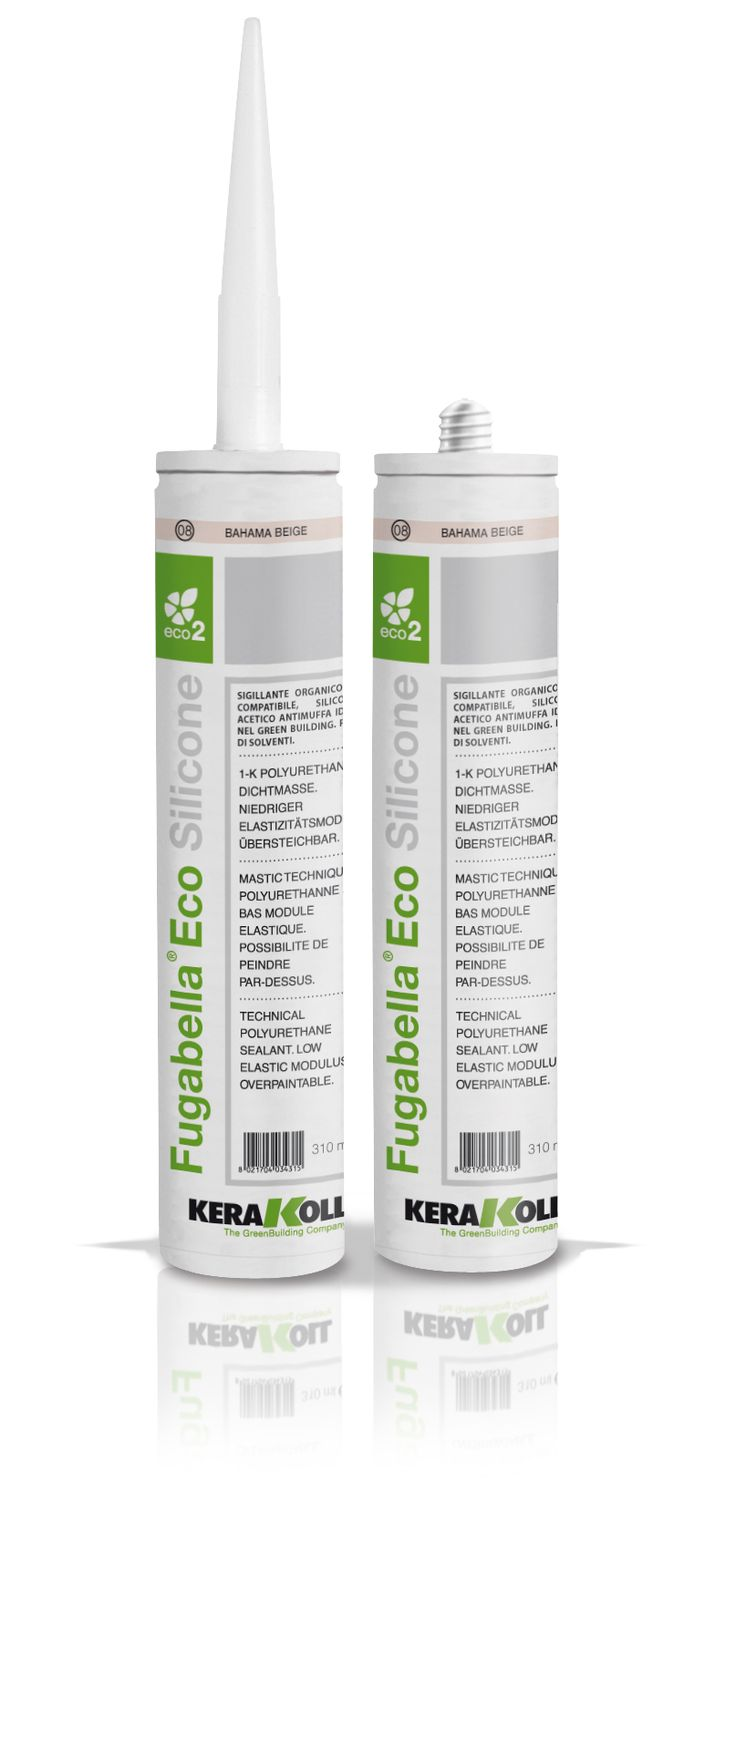 Best 25 anti mould sealants ideas on pinterest illusion kerakoll fugabella silicone a silicone created in colours to match the fugabella grout nvjuhfo Choice Image